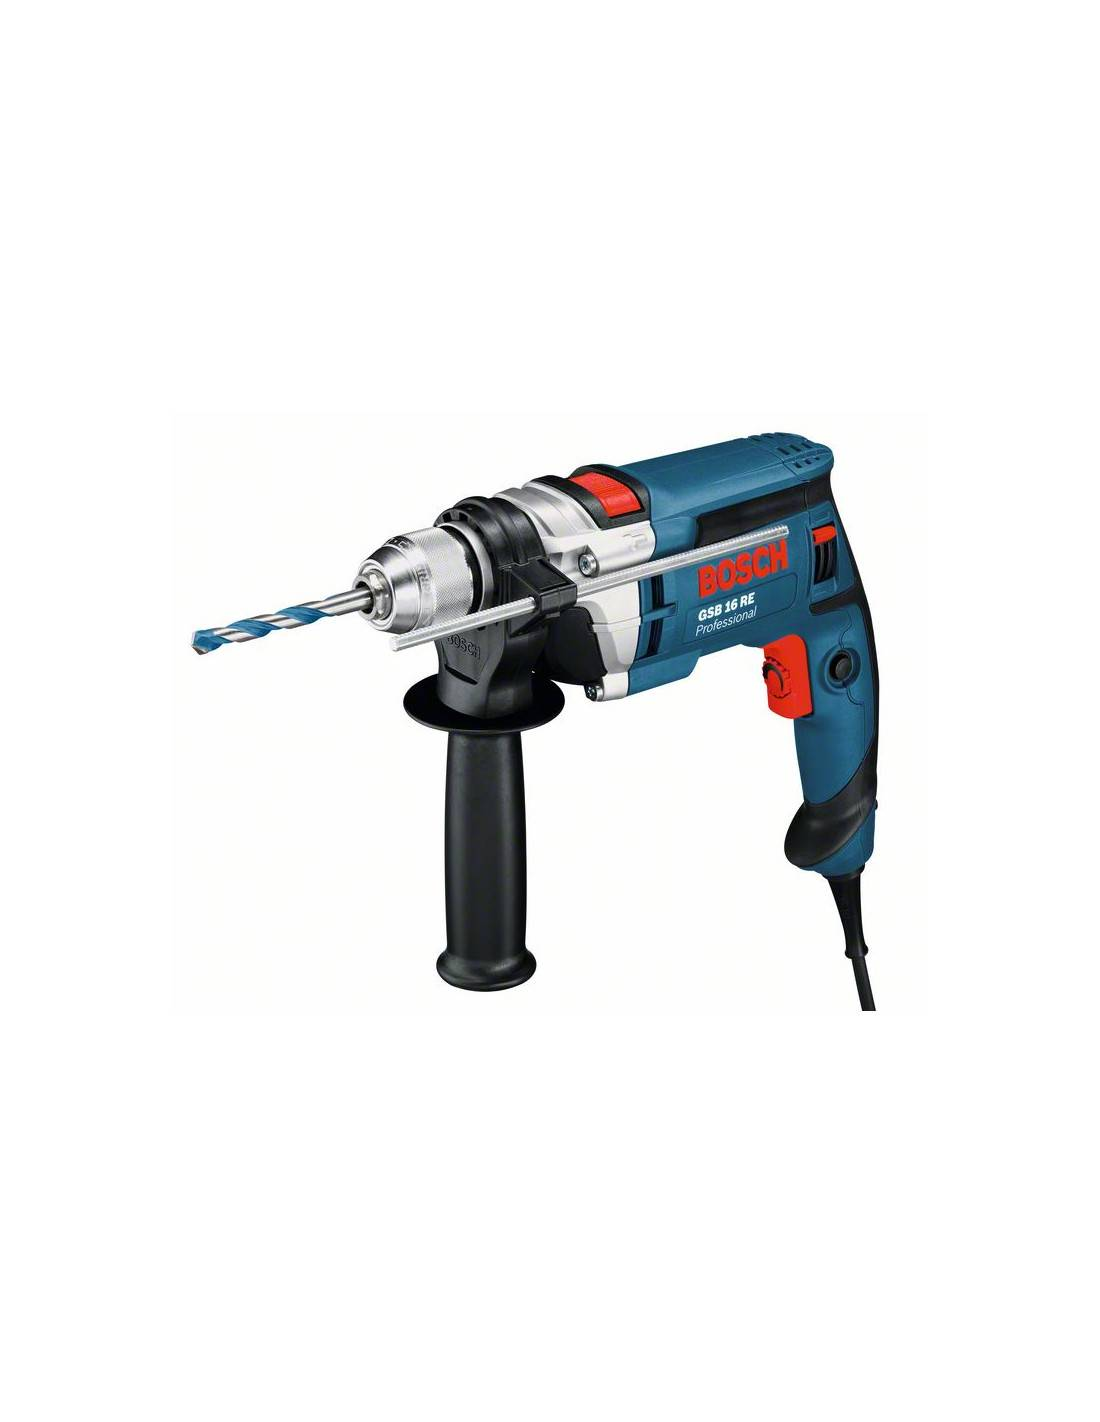 Perceuse à percussion 750W GSB 16 RE - BOSCH - 060114E500